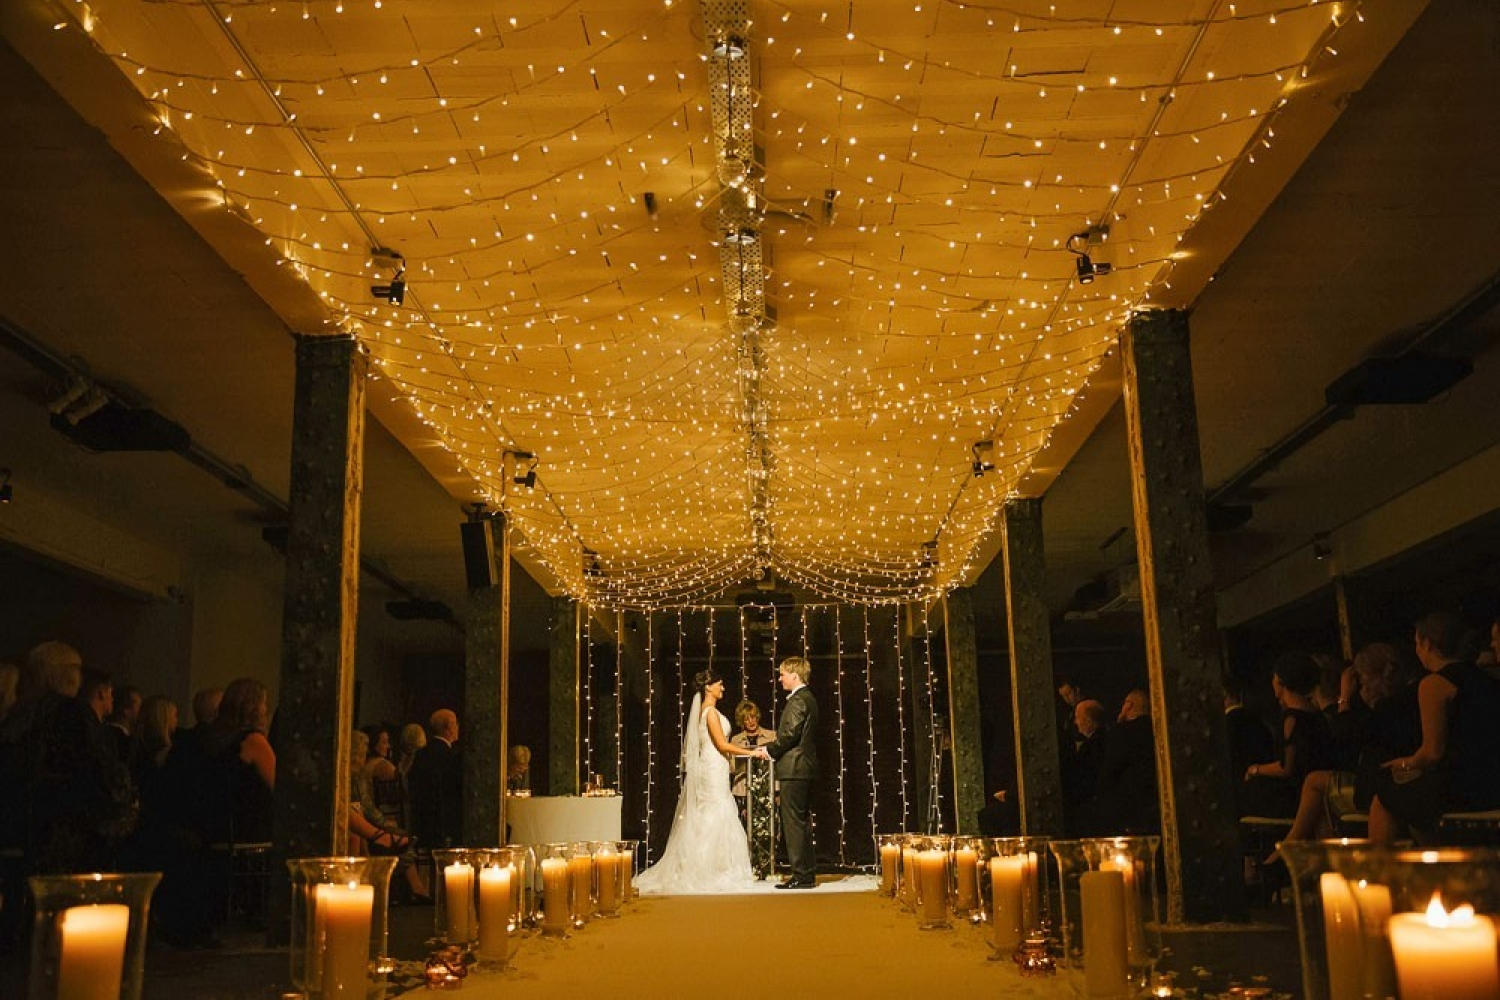 Getting Hitched Heres 12 Alternative Wedding Venues In Manchester